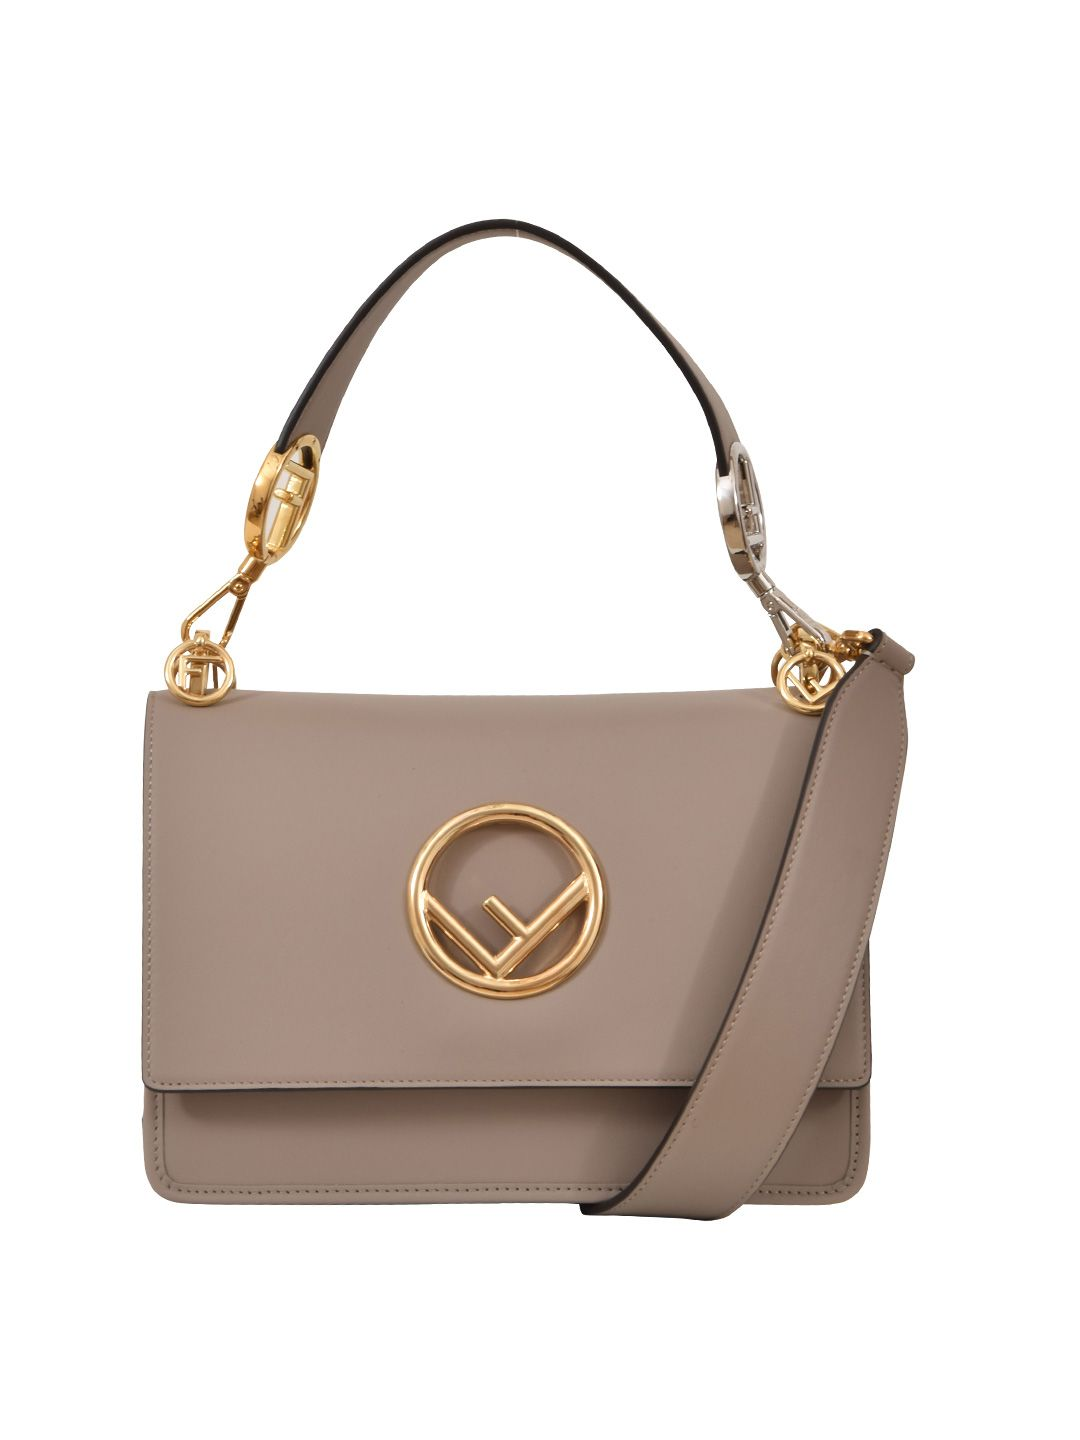 FENDI KAN I MD CROSSBODY BAG